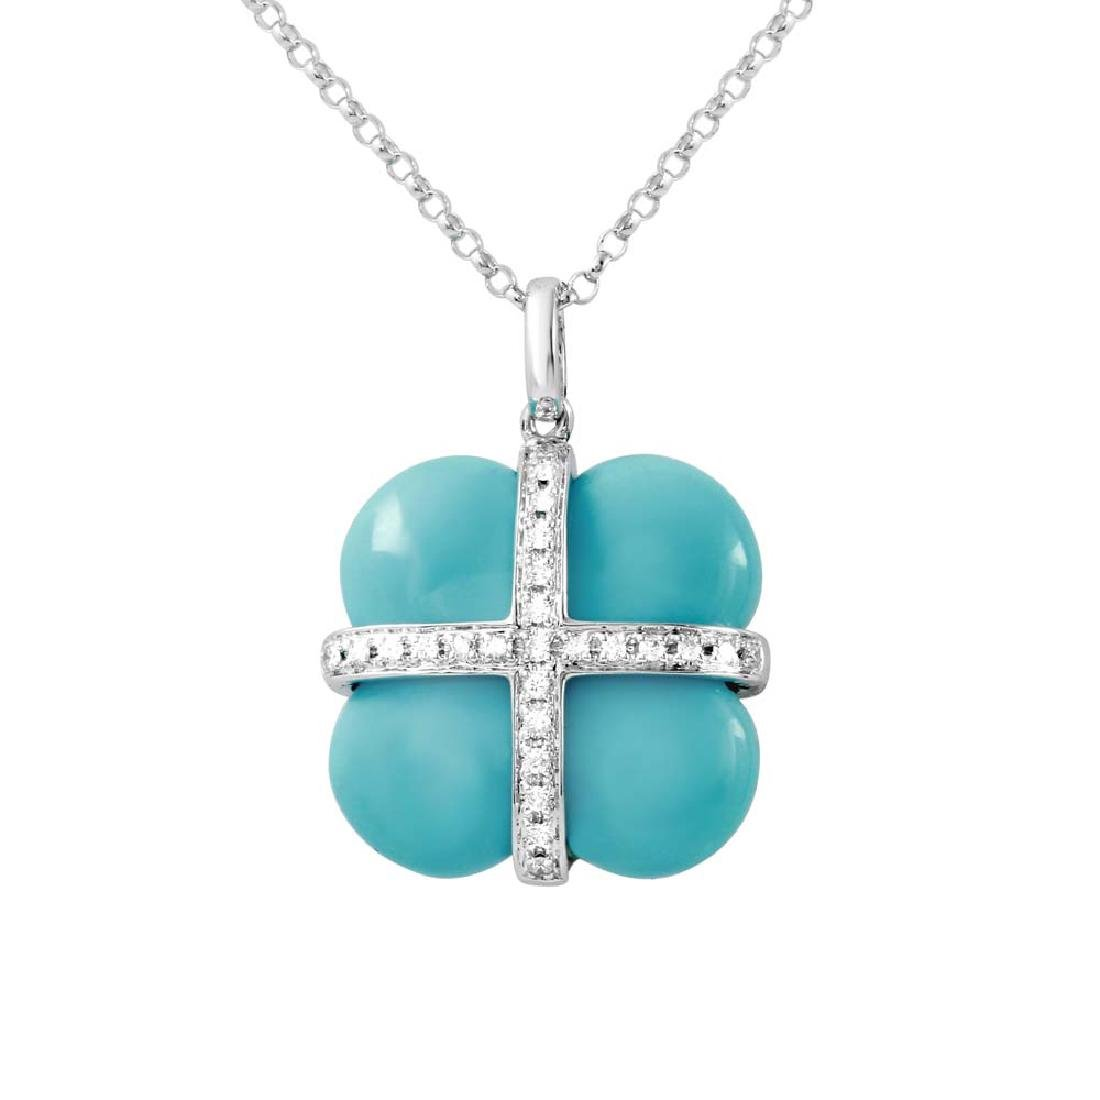 8.96 CTW Turquoise Slider Necklace in 14K White Gold